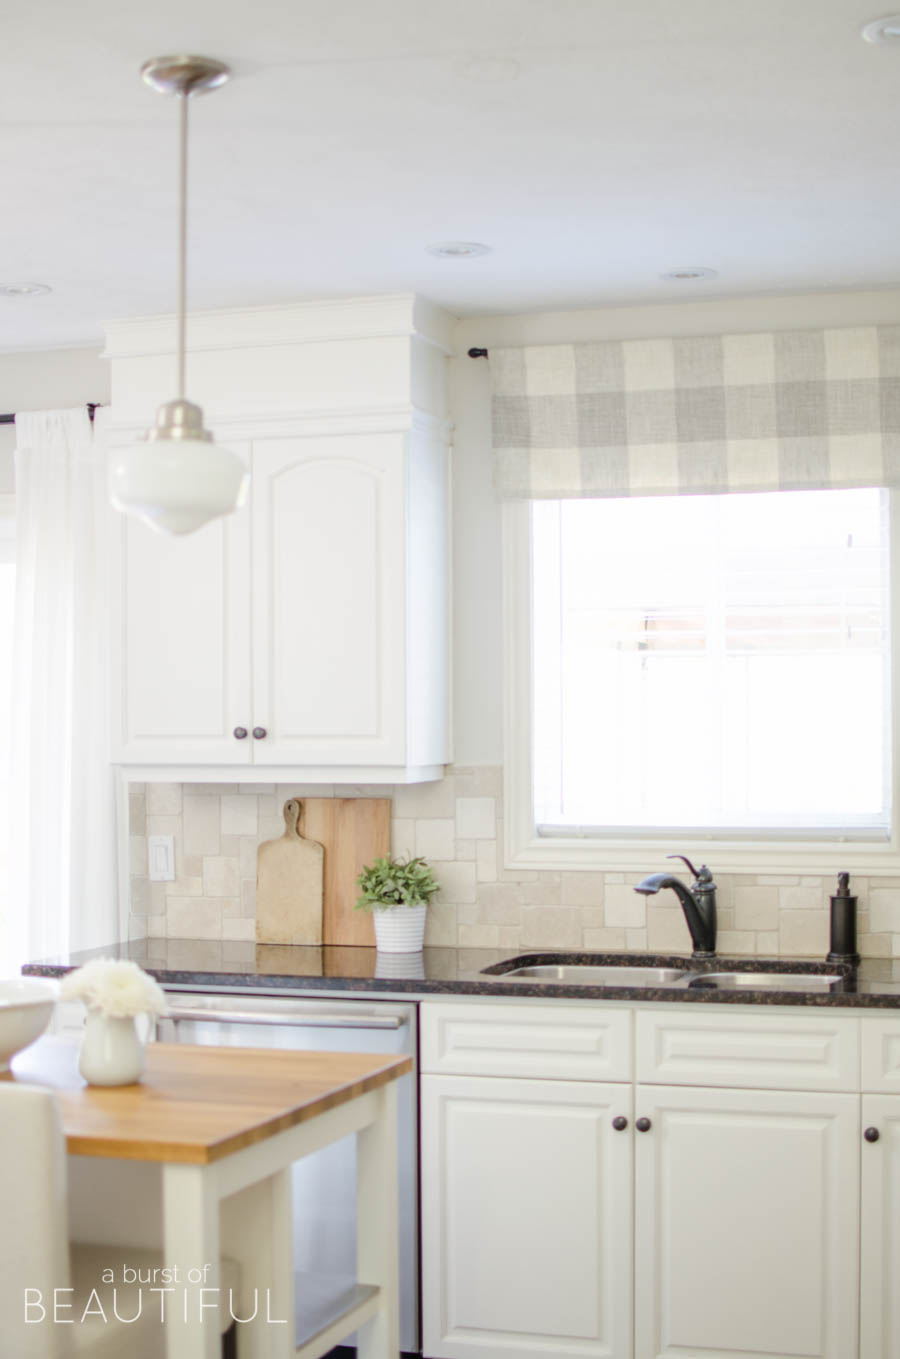 valances for kitchen amish cabinets farmhouse window valance tutorial a burst of beautiful made from neutral buffalo check fabric compliments this simple perfectly